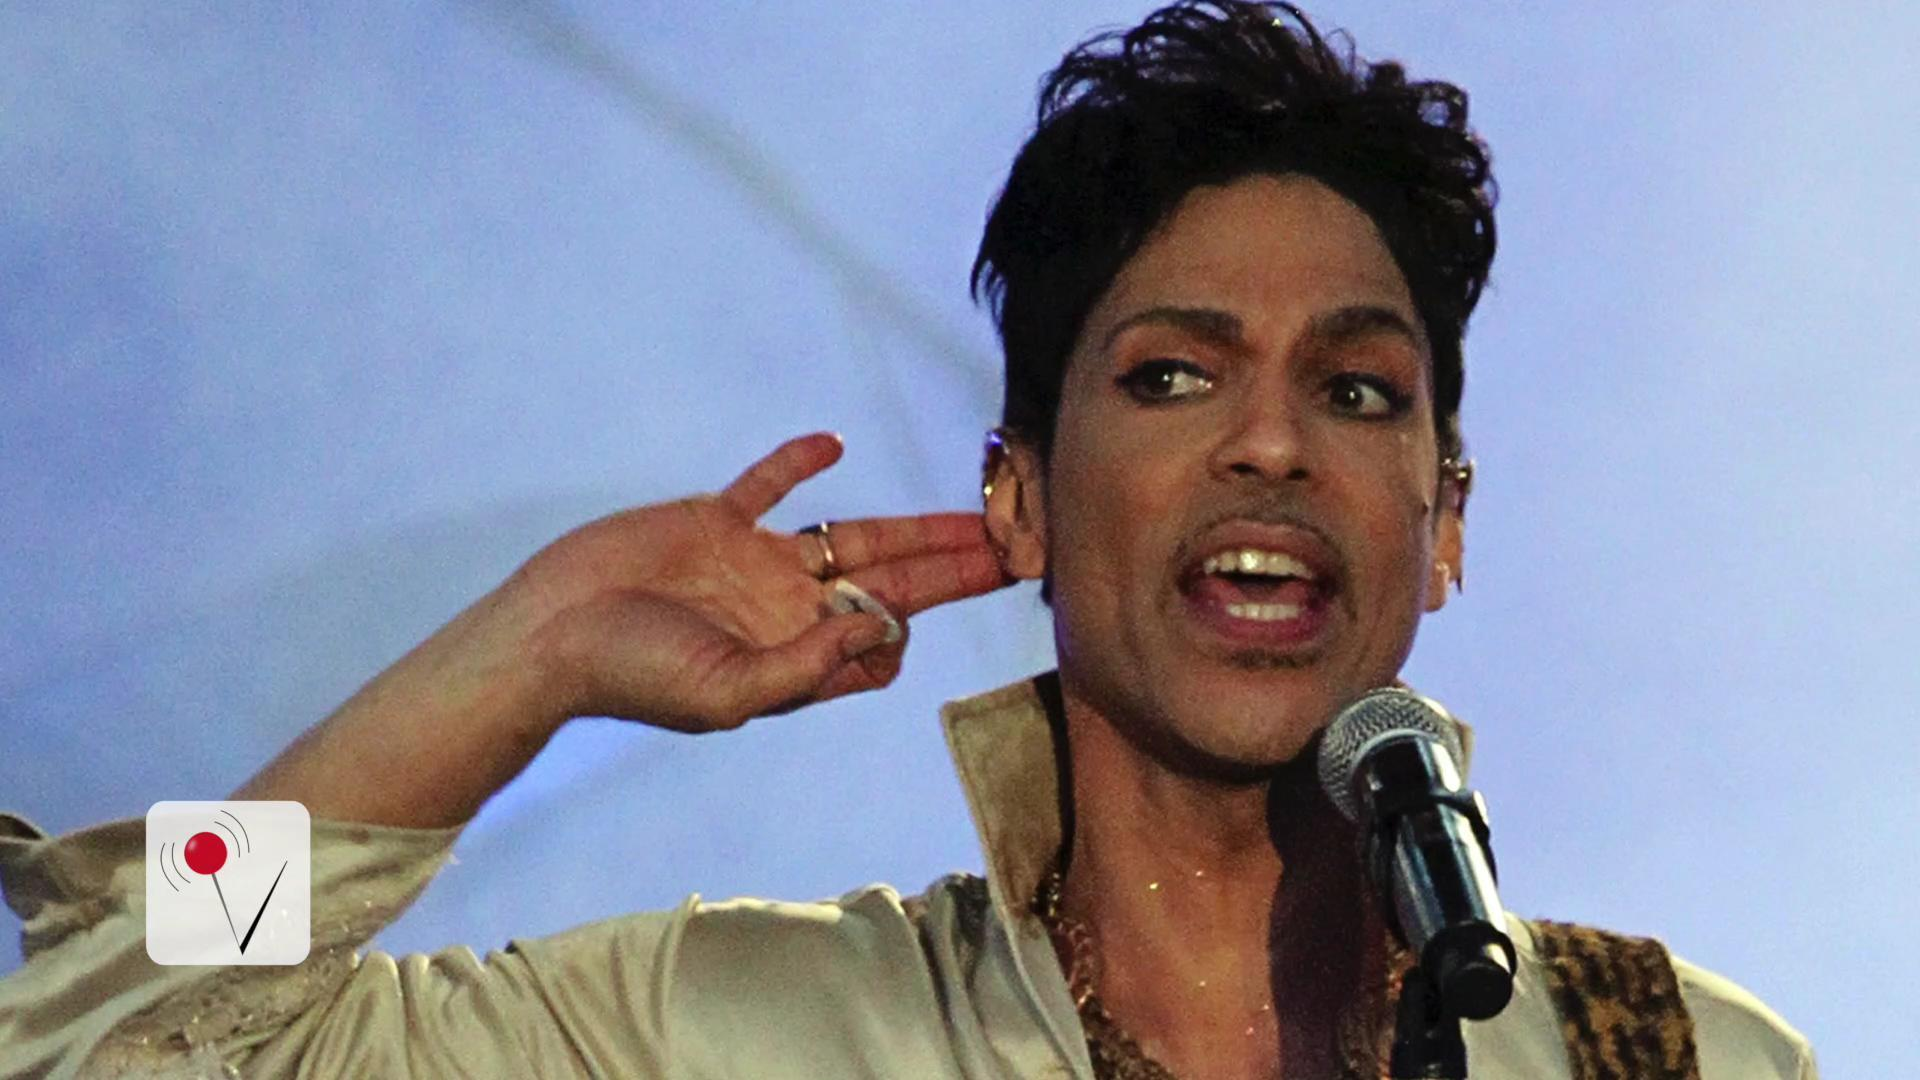 Prince Died Amid Frantic Plans For Drug Addiction Treatment?